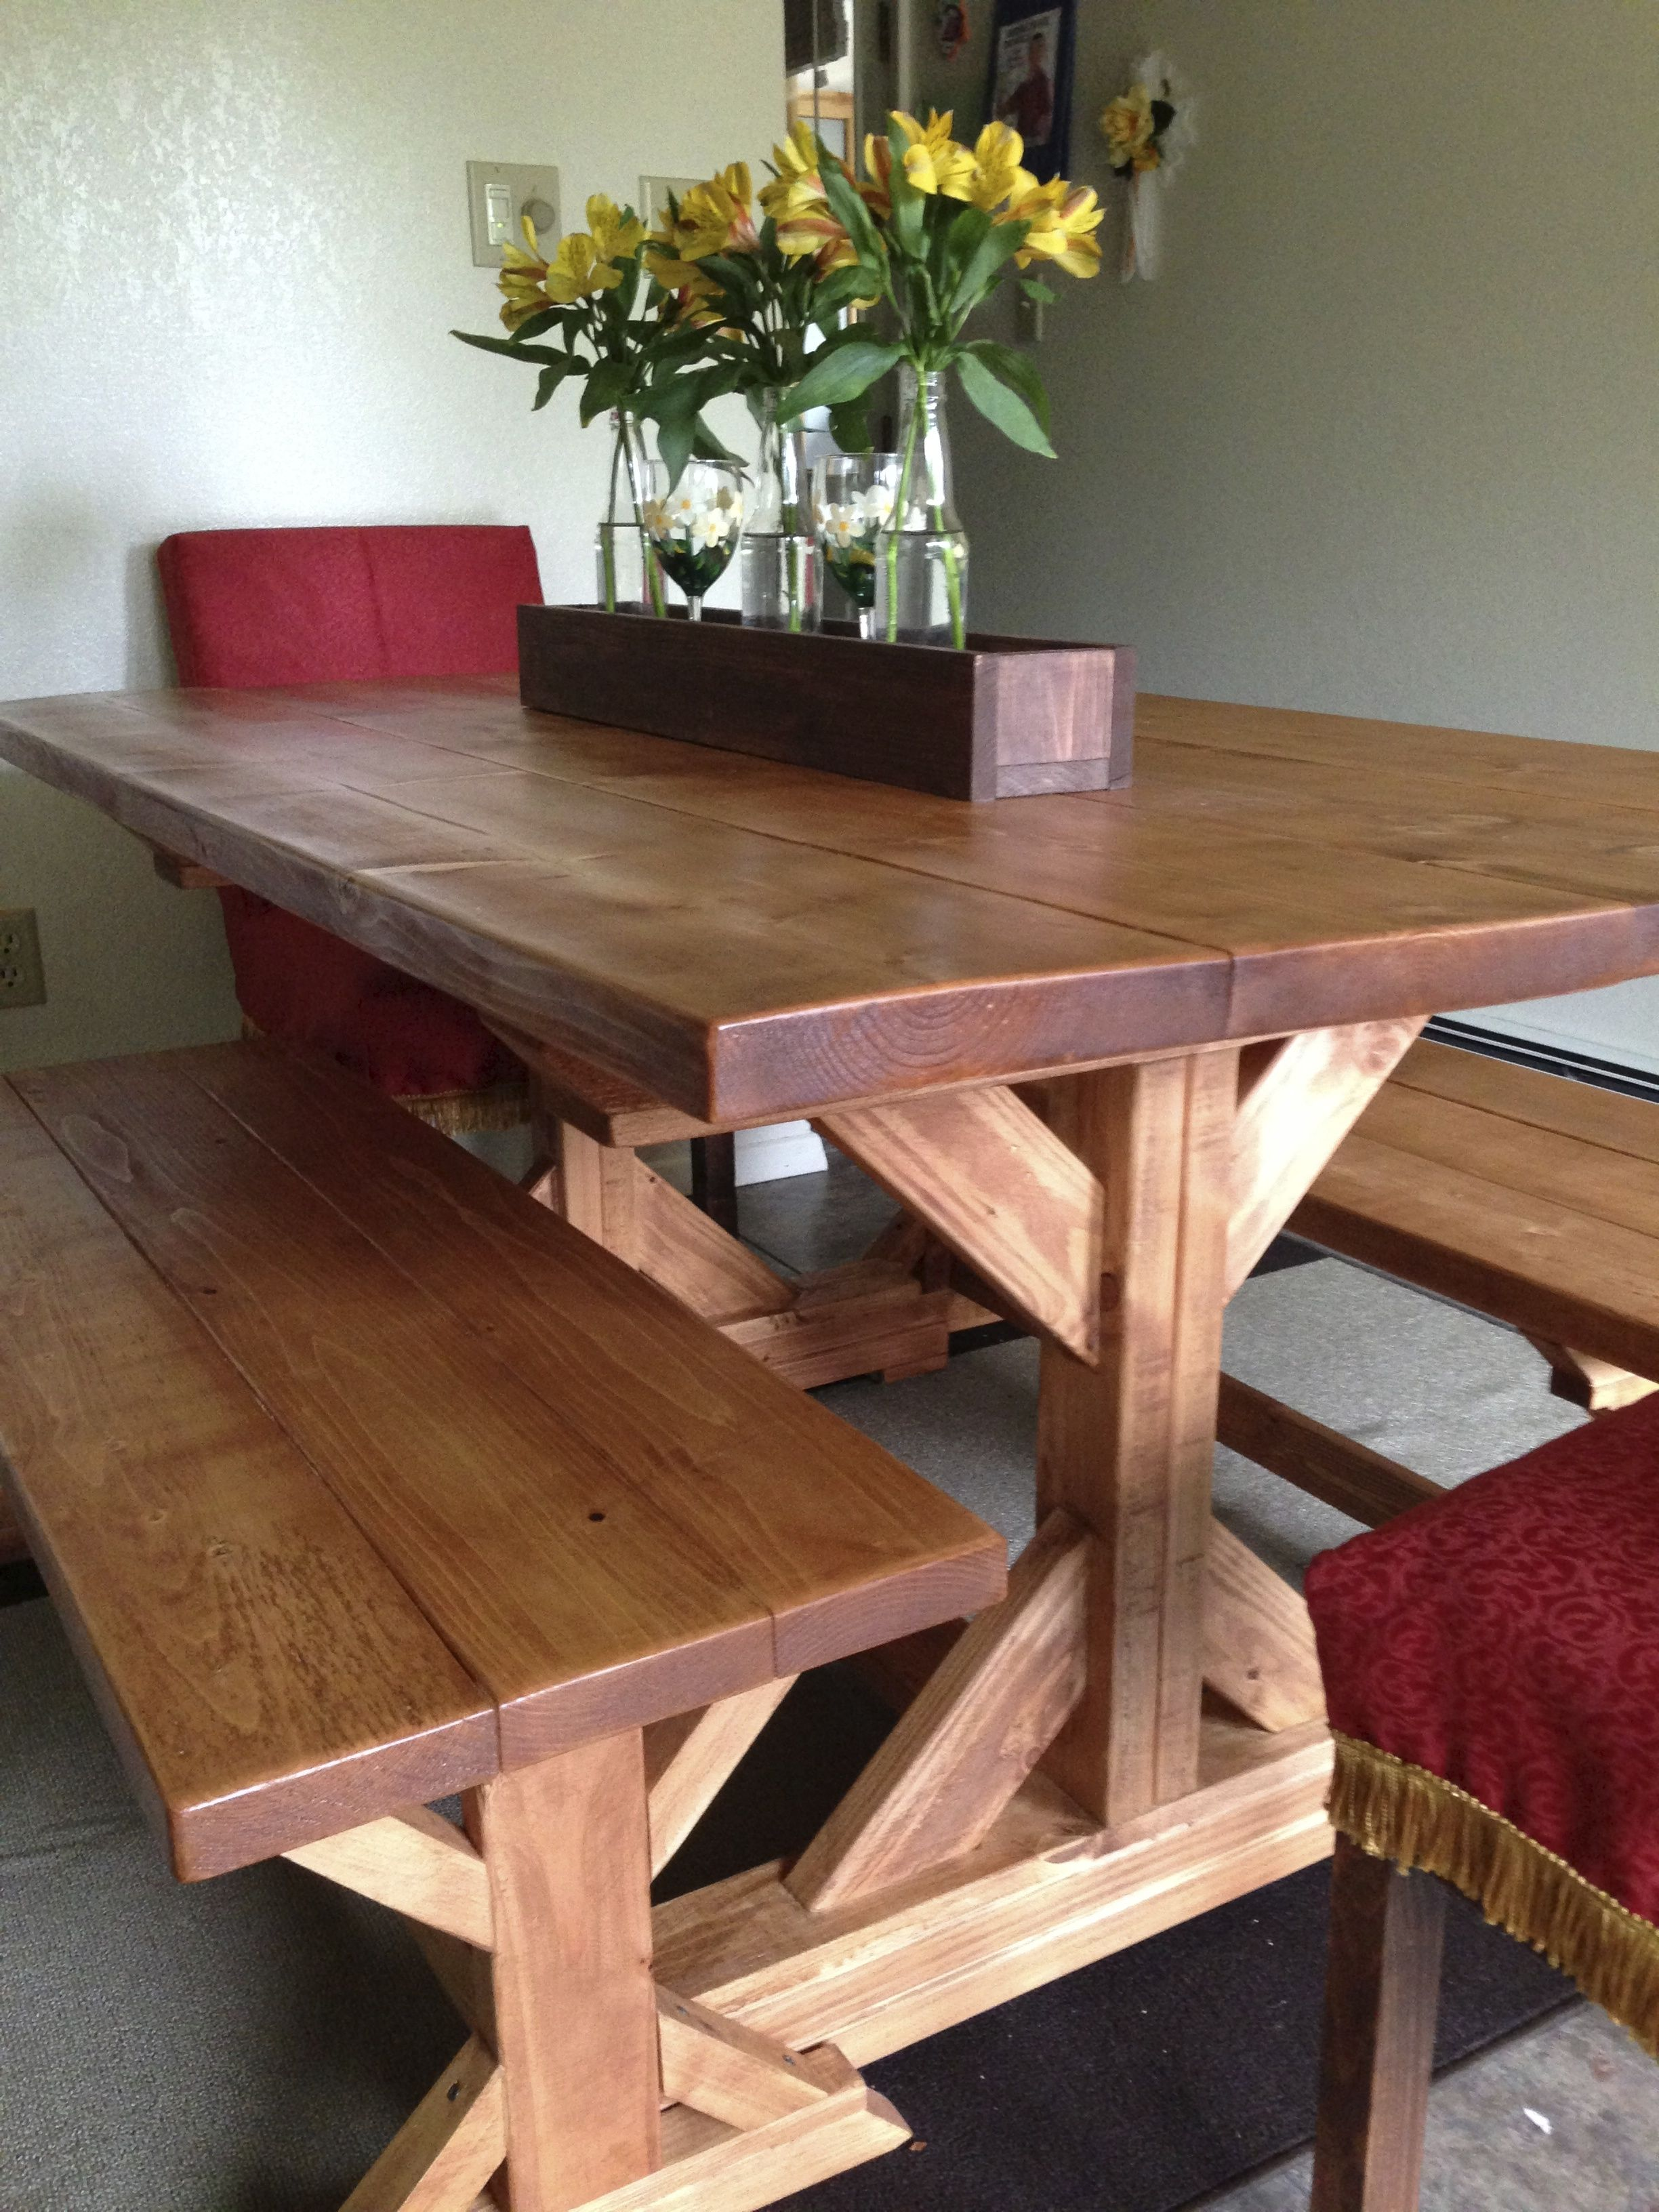 Fancy X Farmhouse Table and Benches. Plans at AnaWhite